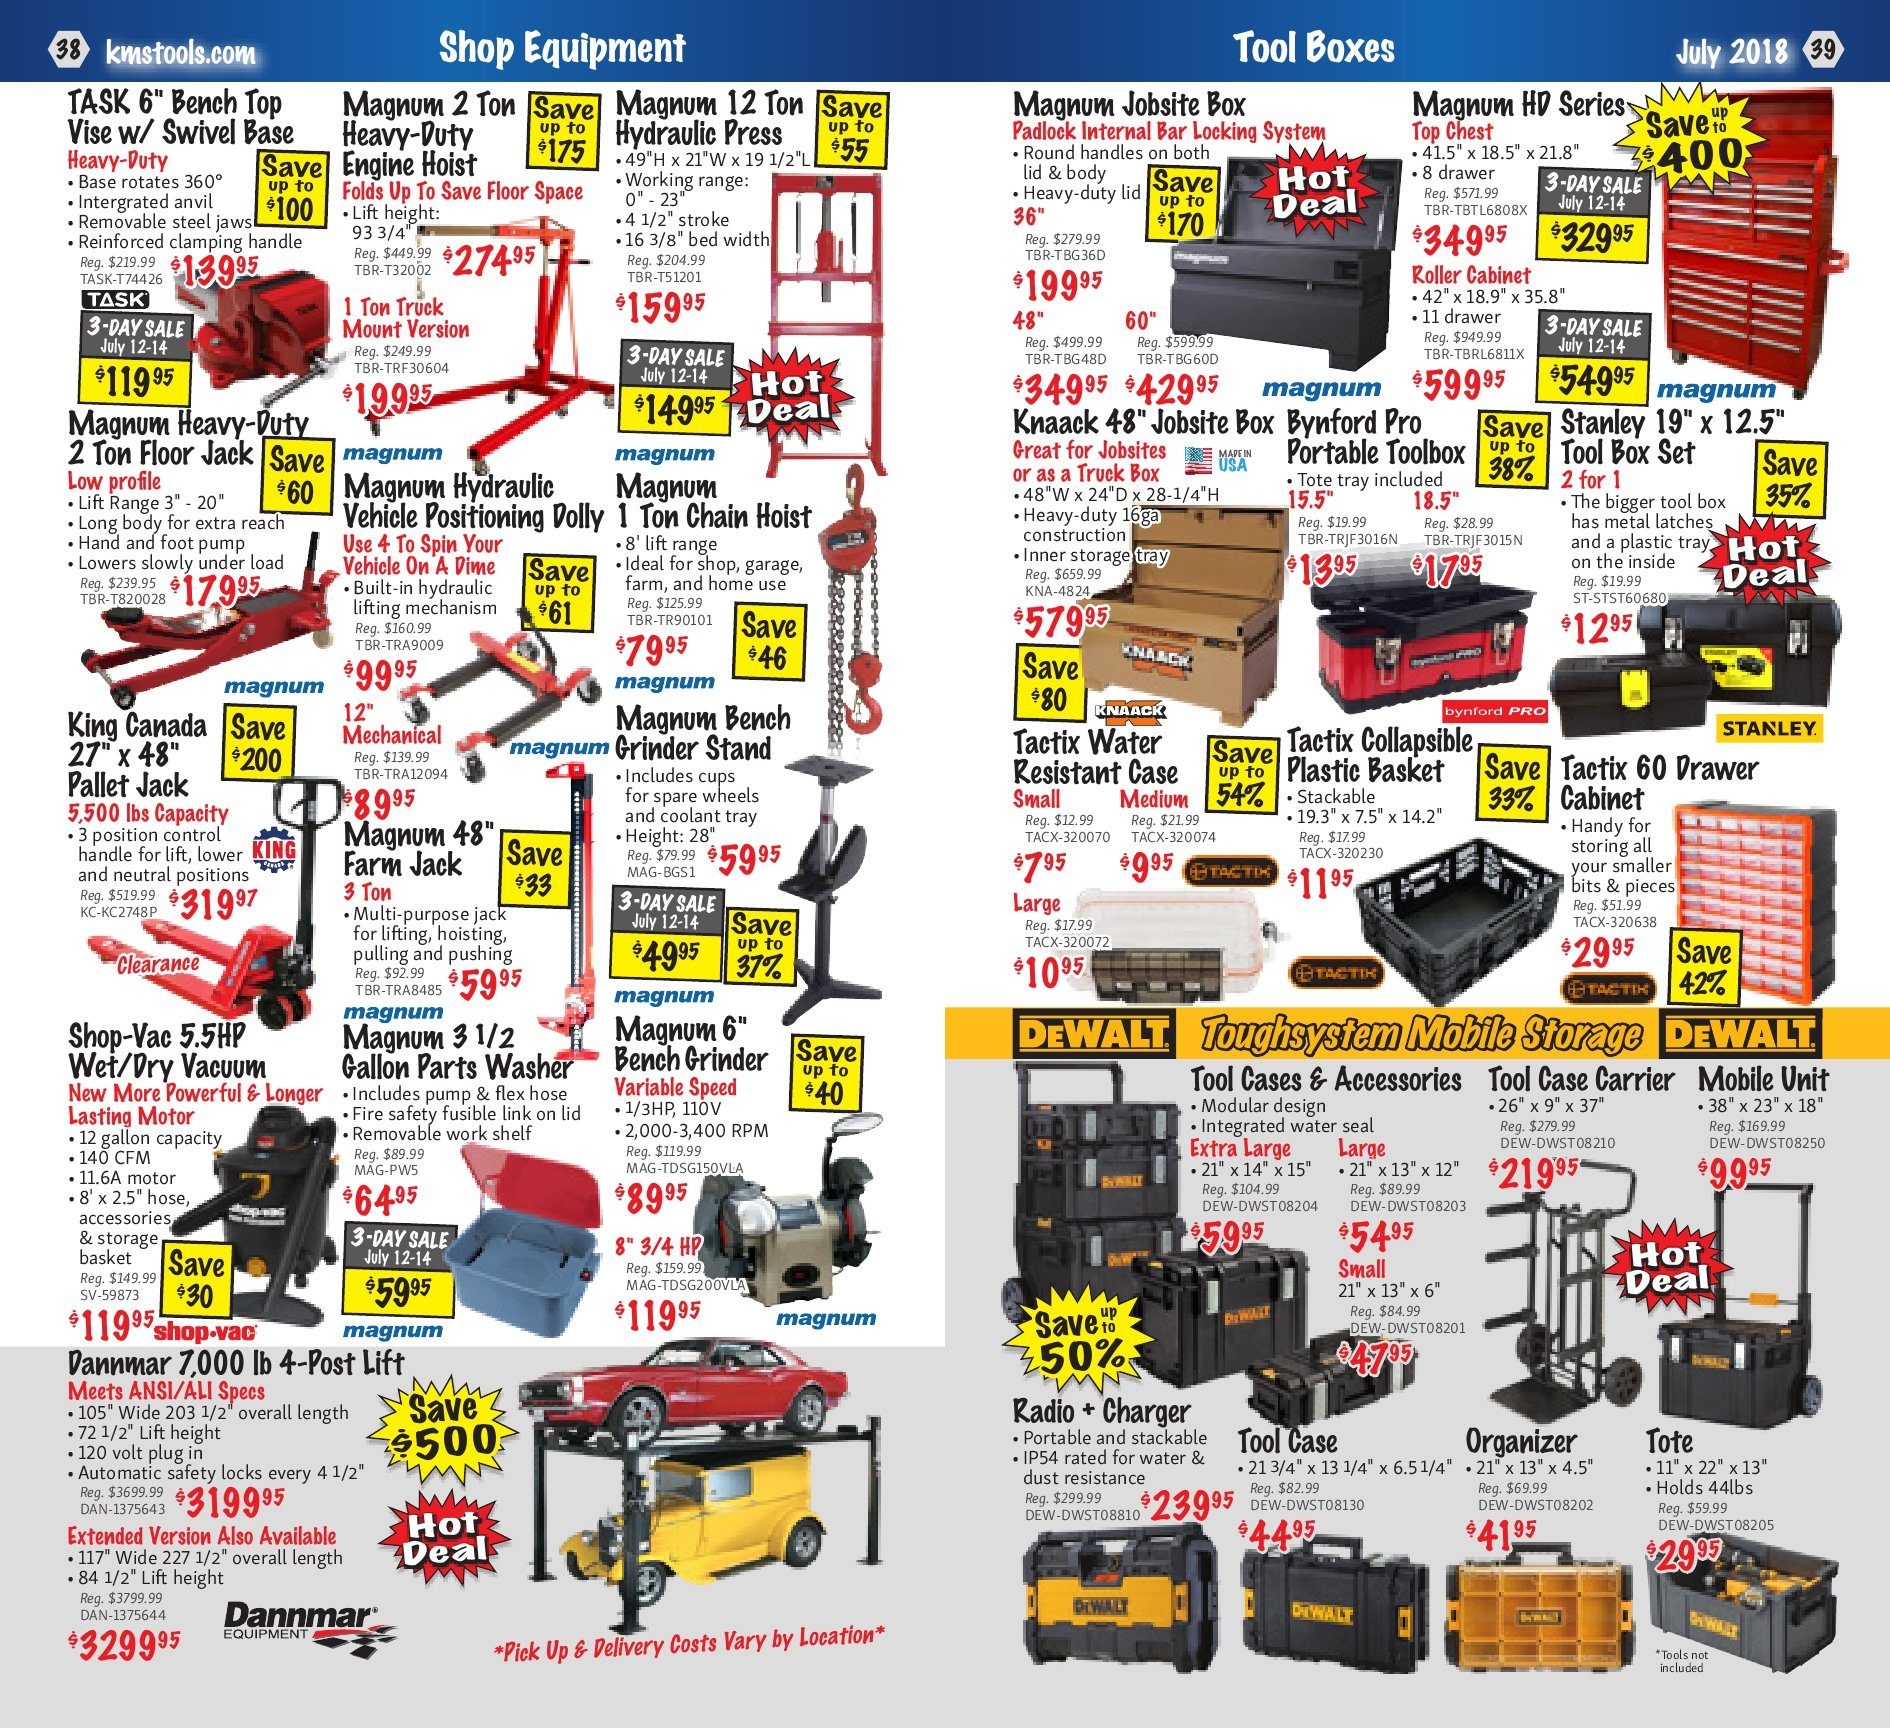 Kms Tools Weekly Flyer Power Tool Sale Jun 30 Jul 31 Speed Ceiling Fan Switch With Pull Chain 4wire Rona